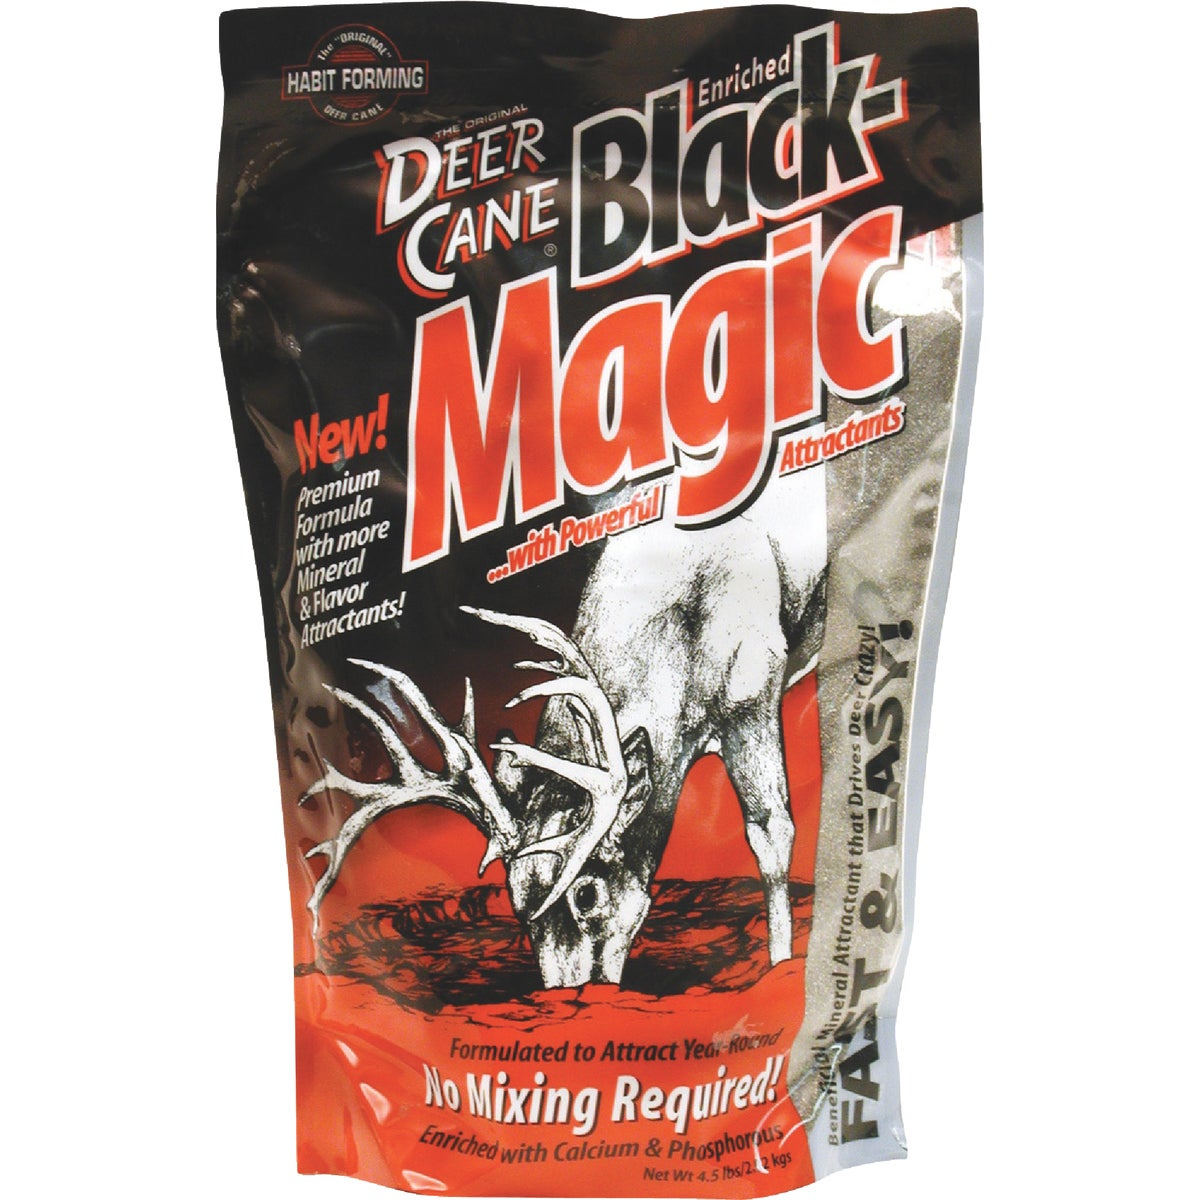 BLACK MAGIC DEER CANE